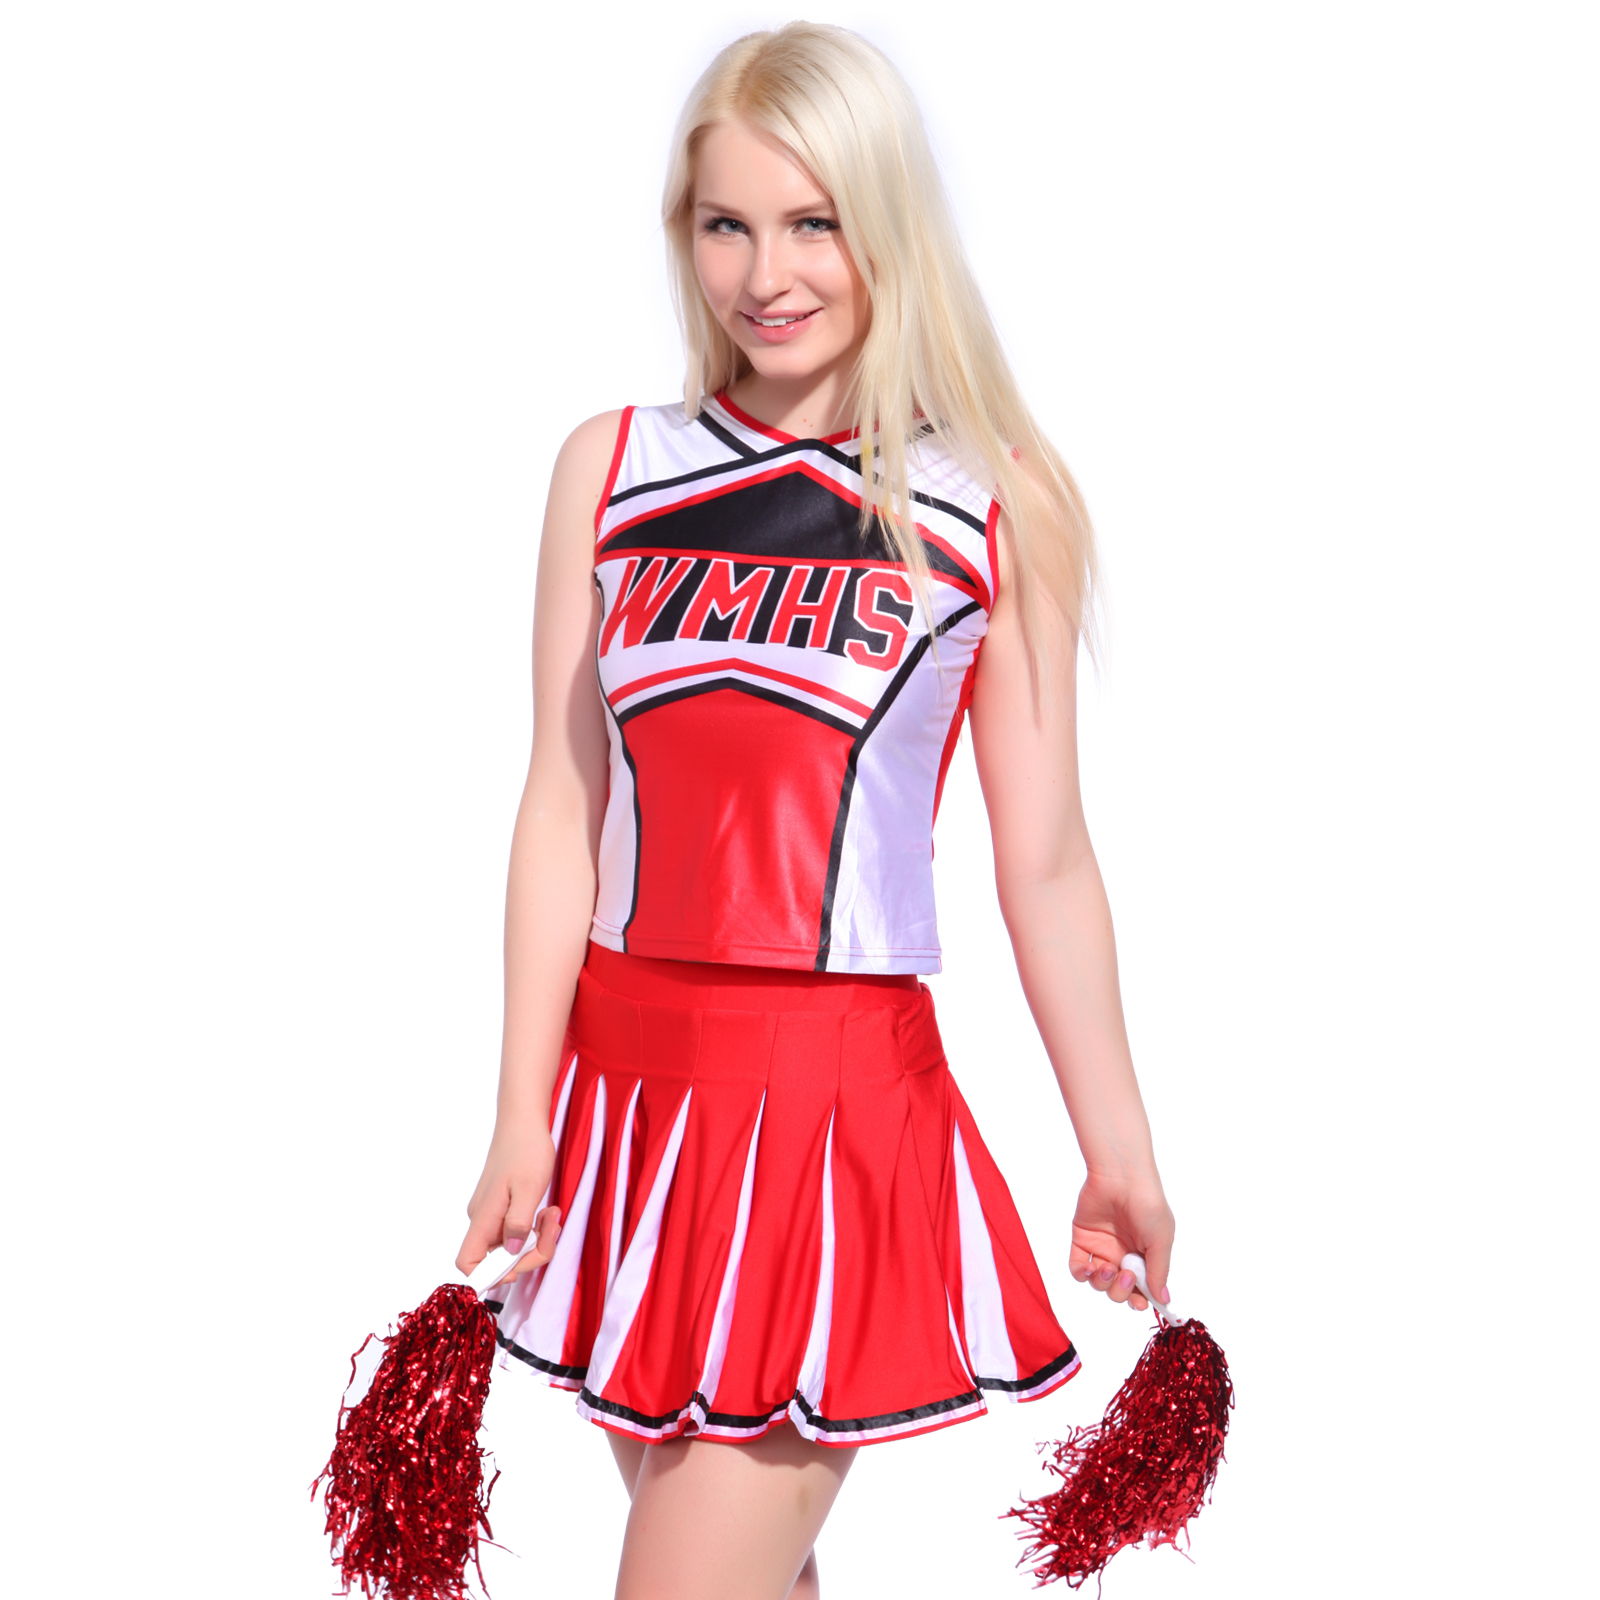 Debardeur Jupon Pom pom girl cheer leader S/M/L 2 pieces deguisement rouge | eBay